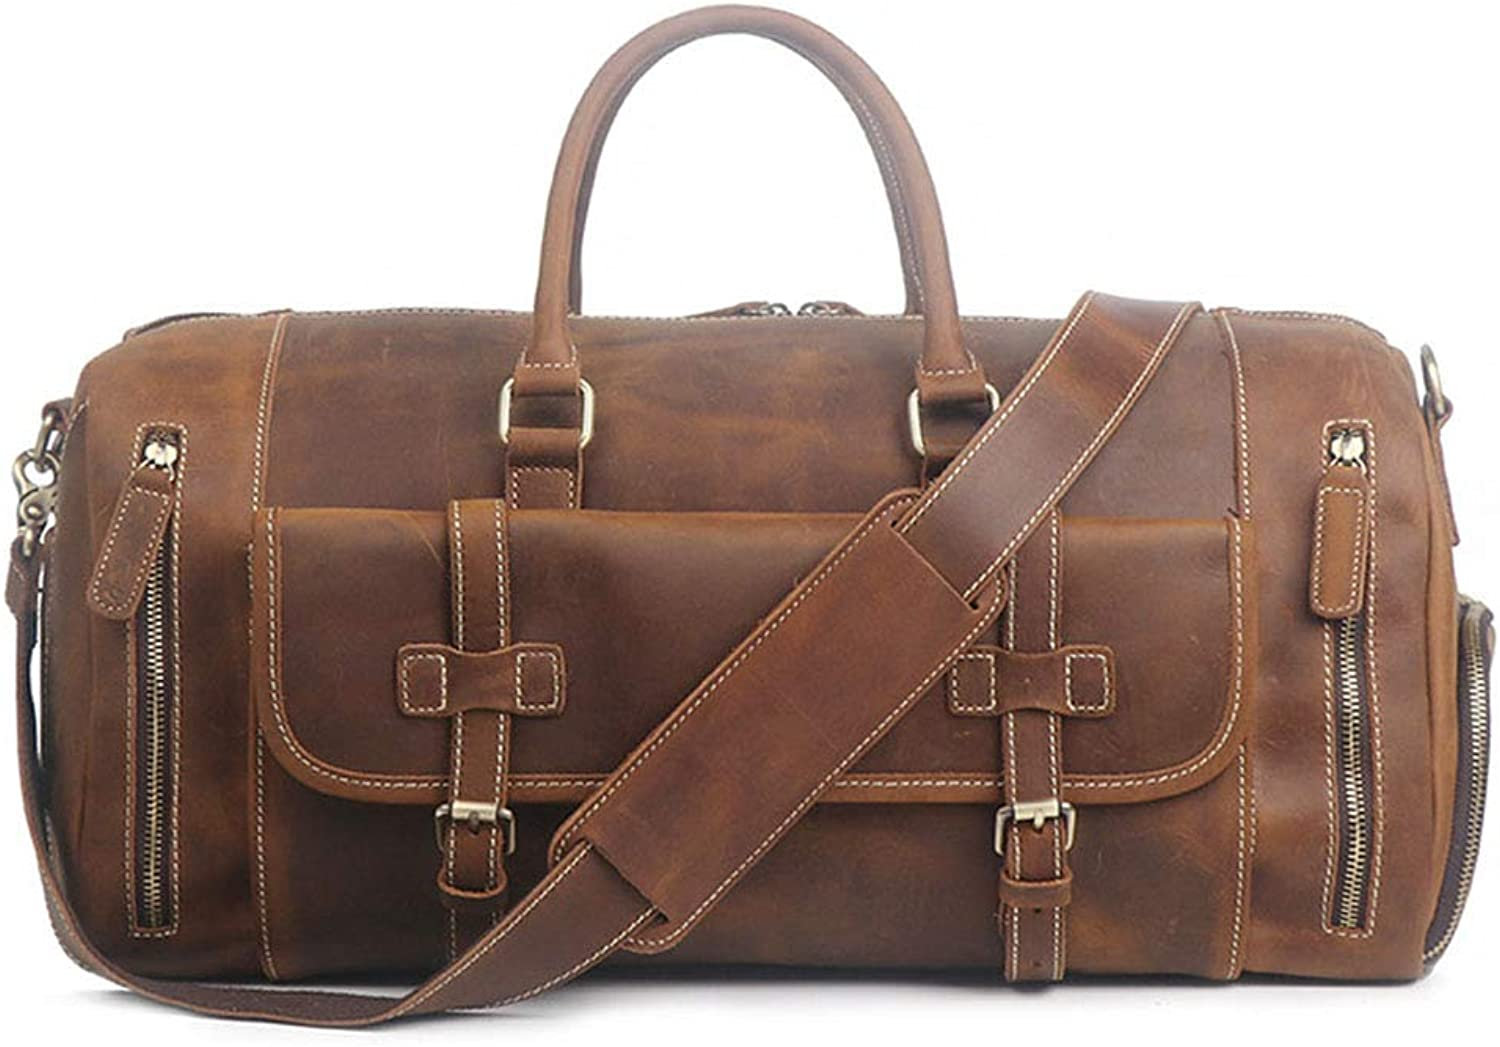 Travel Bag Crazy Horseskin Male Travel Bag Large Capacity Single Shoulder Diagonal shoes Duffel Bag (color   Brown, Size   52cmX24cmX23cm)